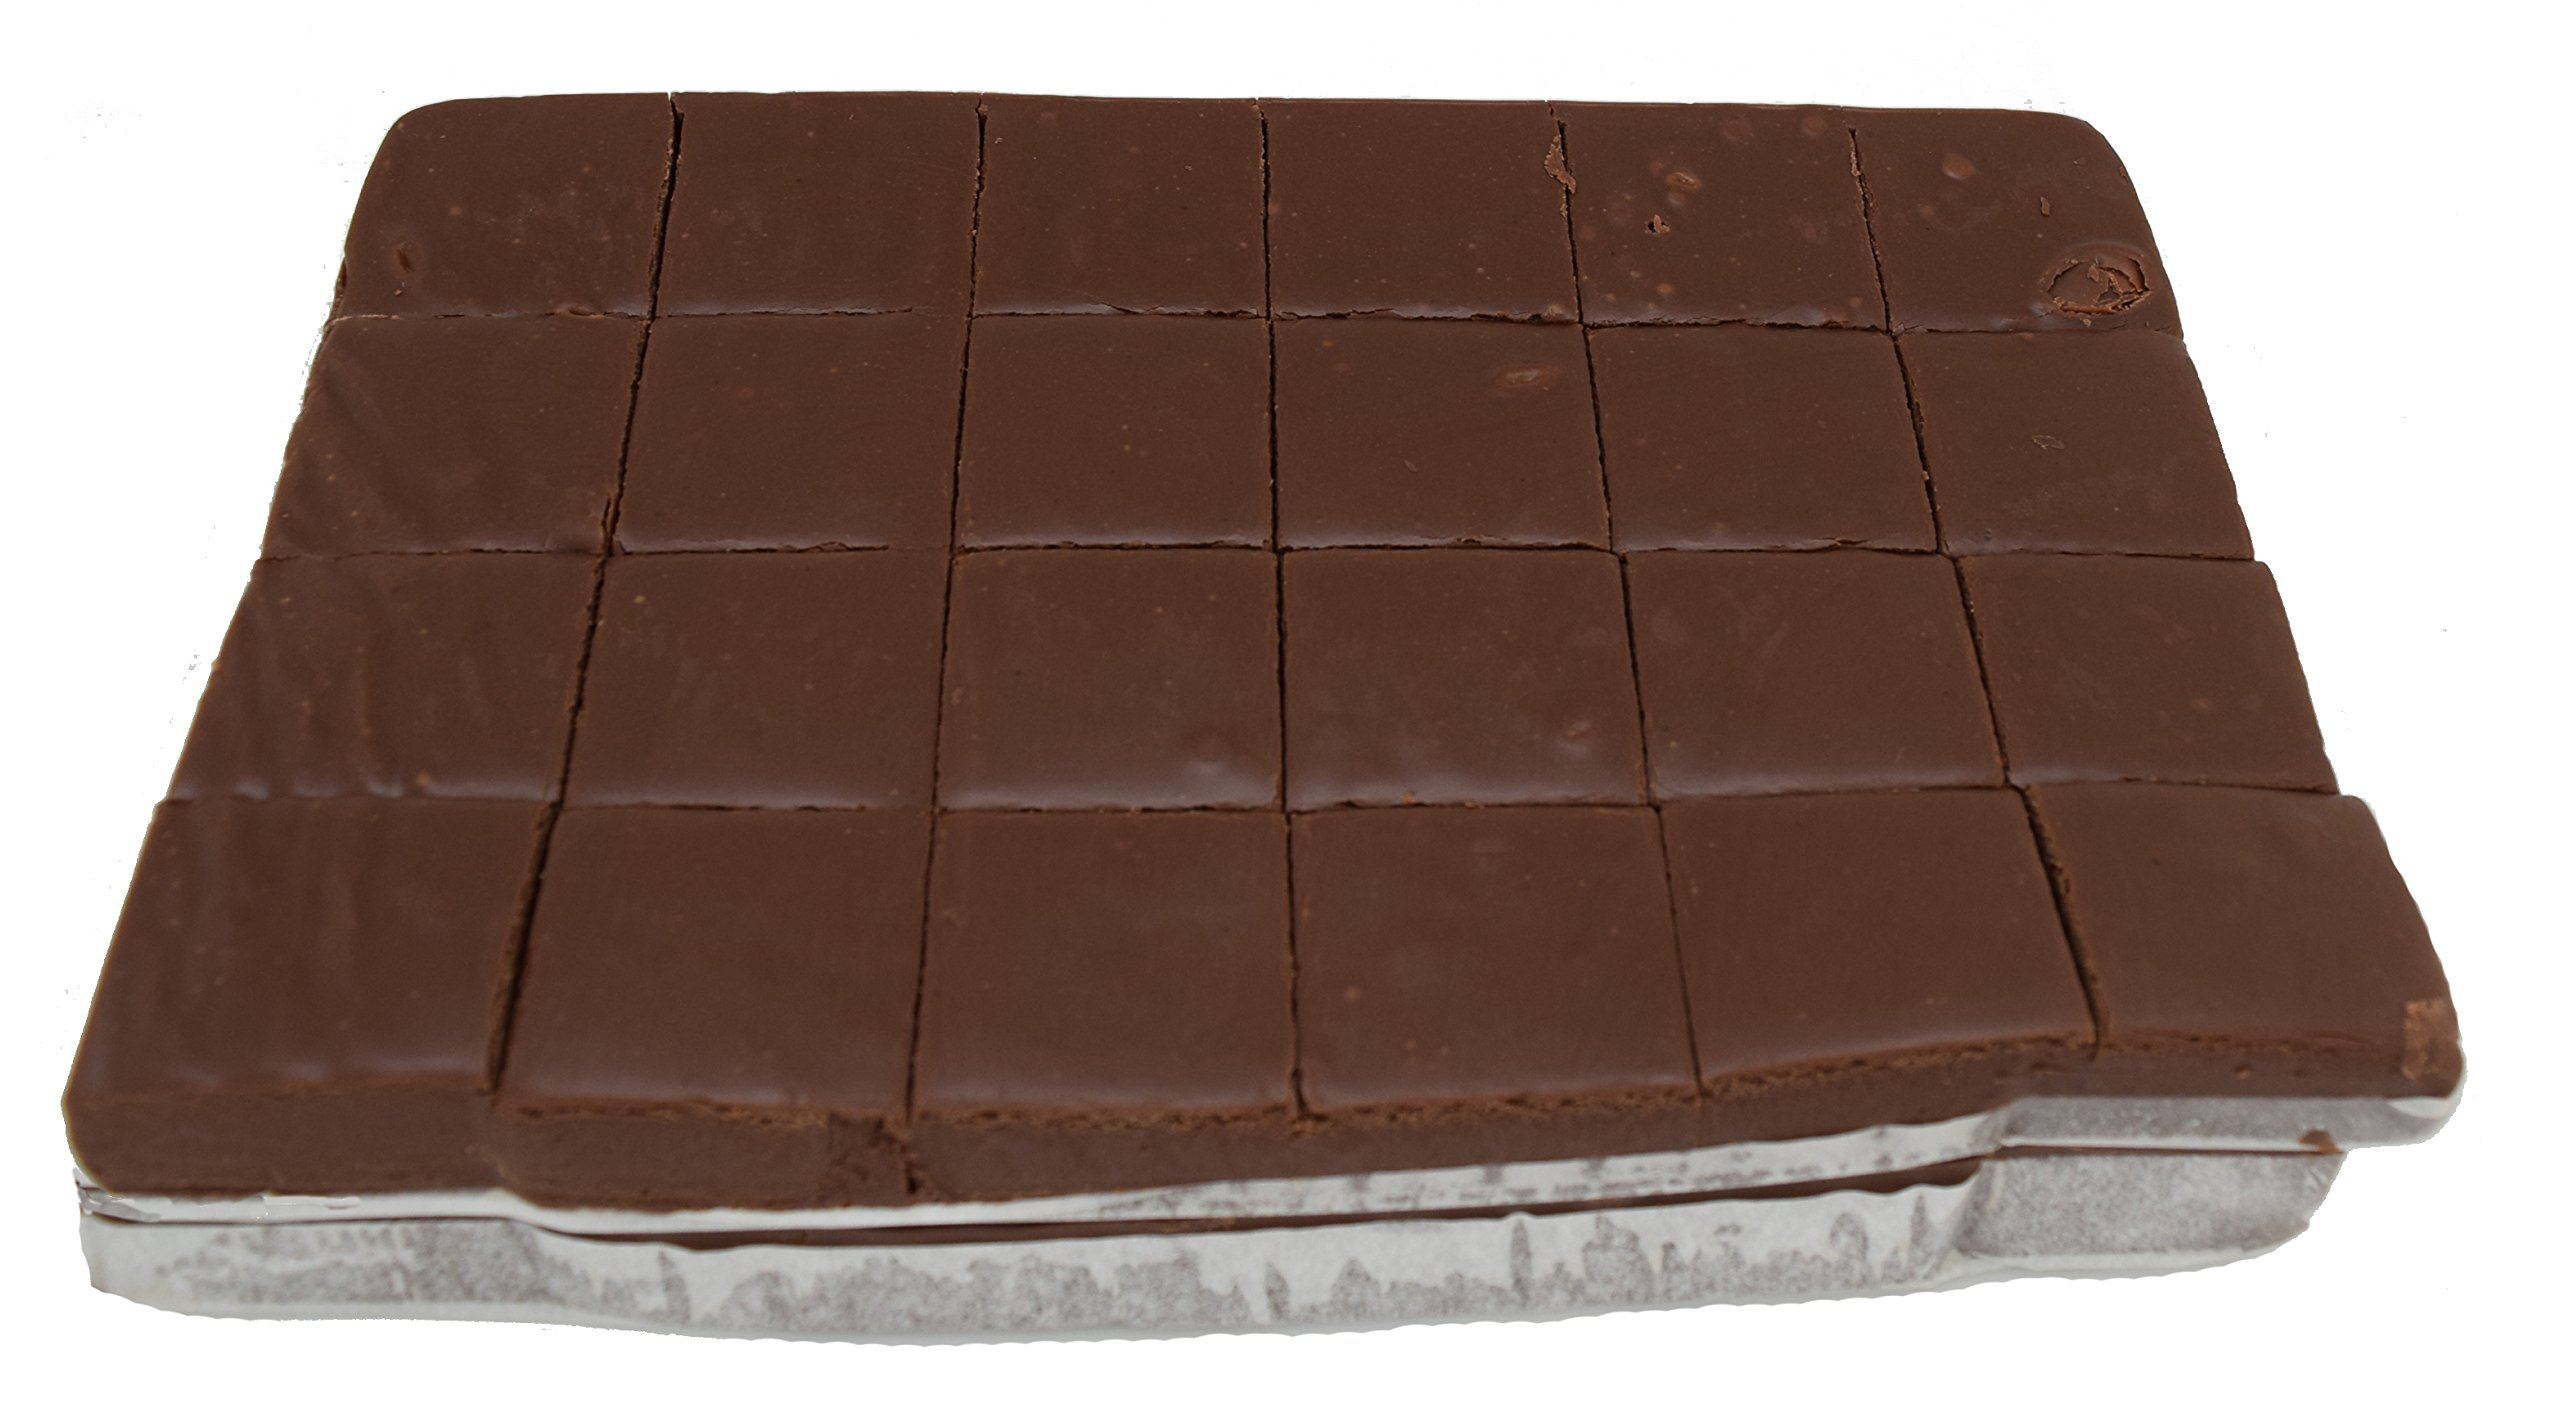 Country Fresh Fudge Sugar-Free Chocolate, 6 Pound by Country Fresh Fudge